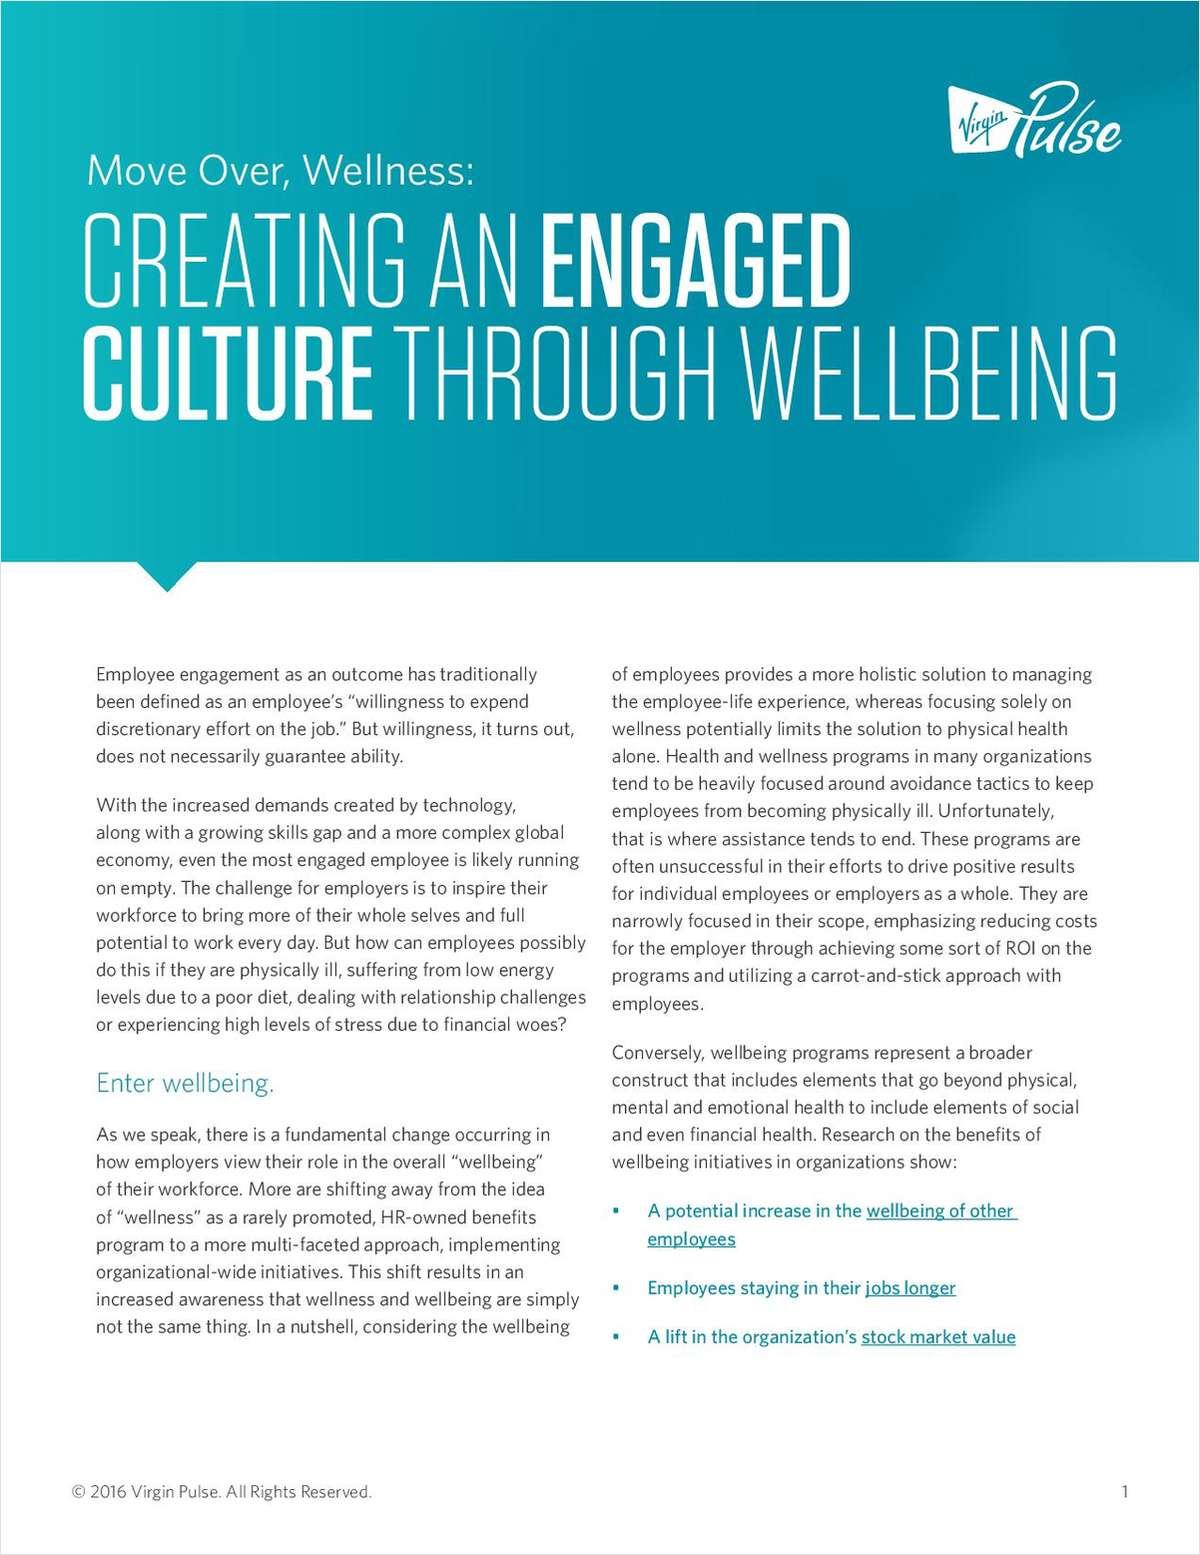 Move Over, Wellness: Creating an Engaged Culture Through Wellbeing